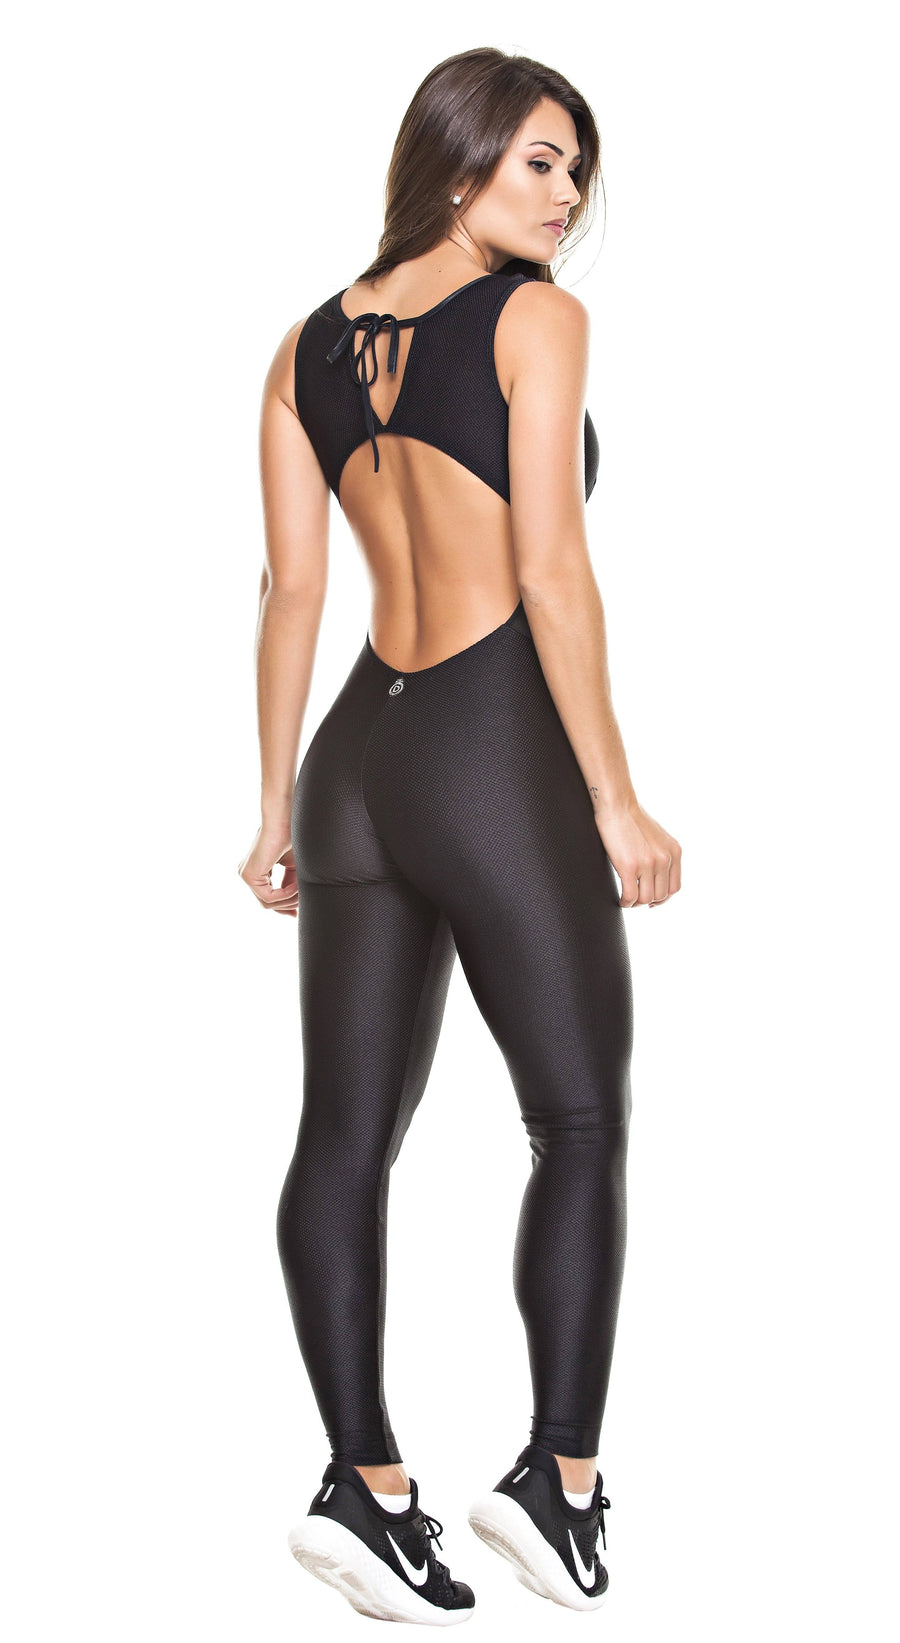 Brazilian Workout Jumpsuit - Bossy Mesh On Black